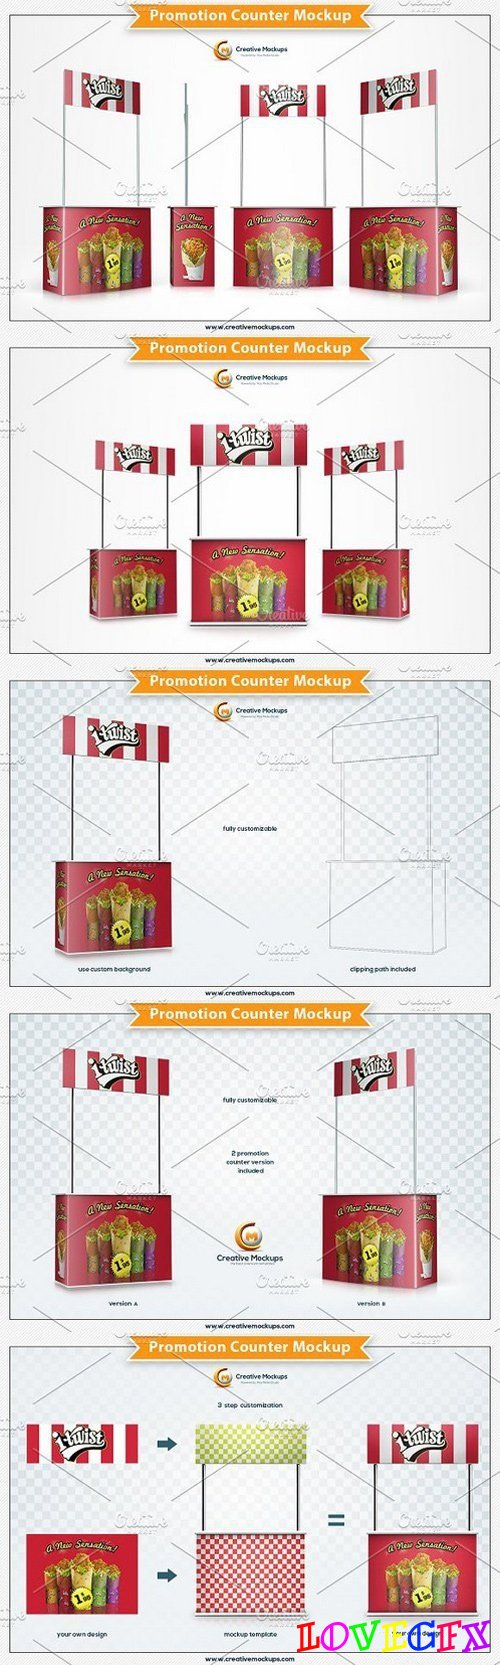 Promotion Counter Mockup 1309006